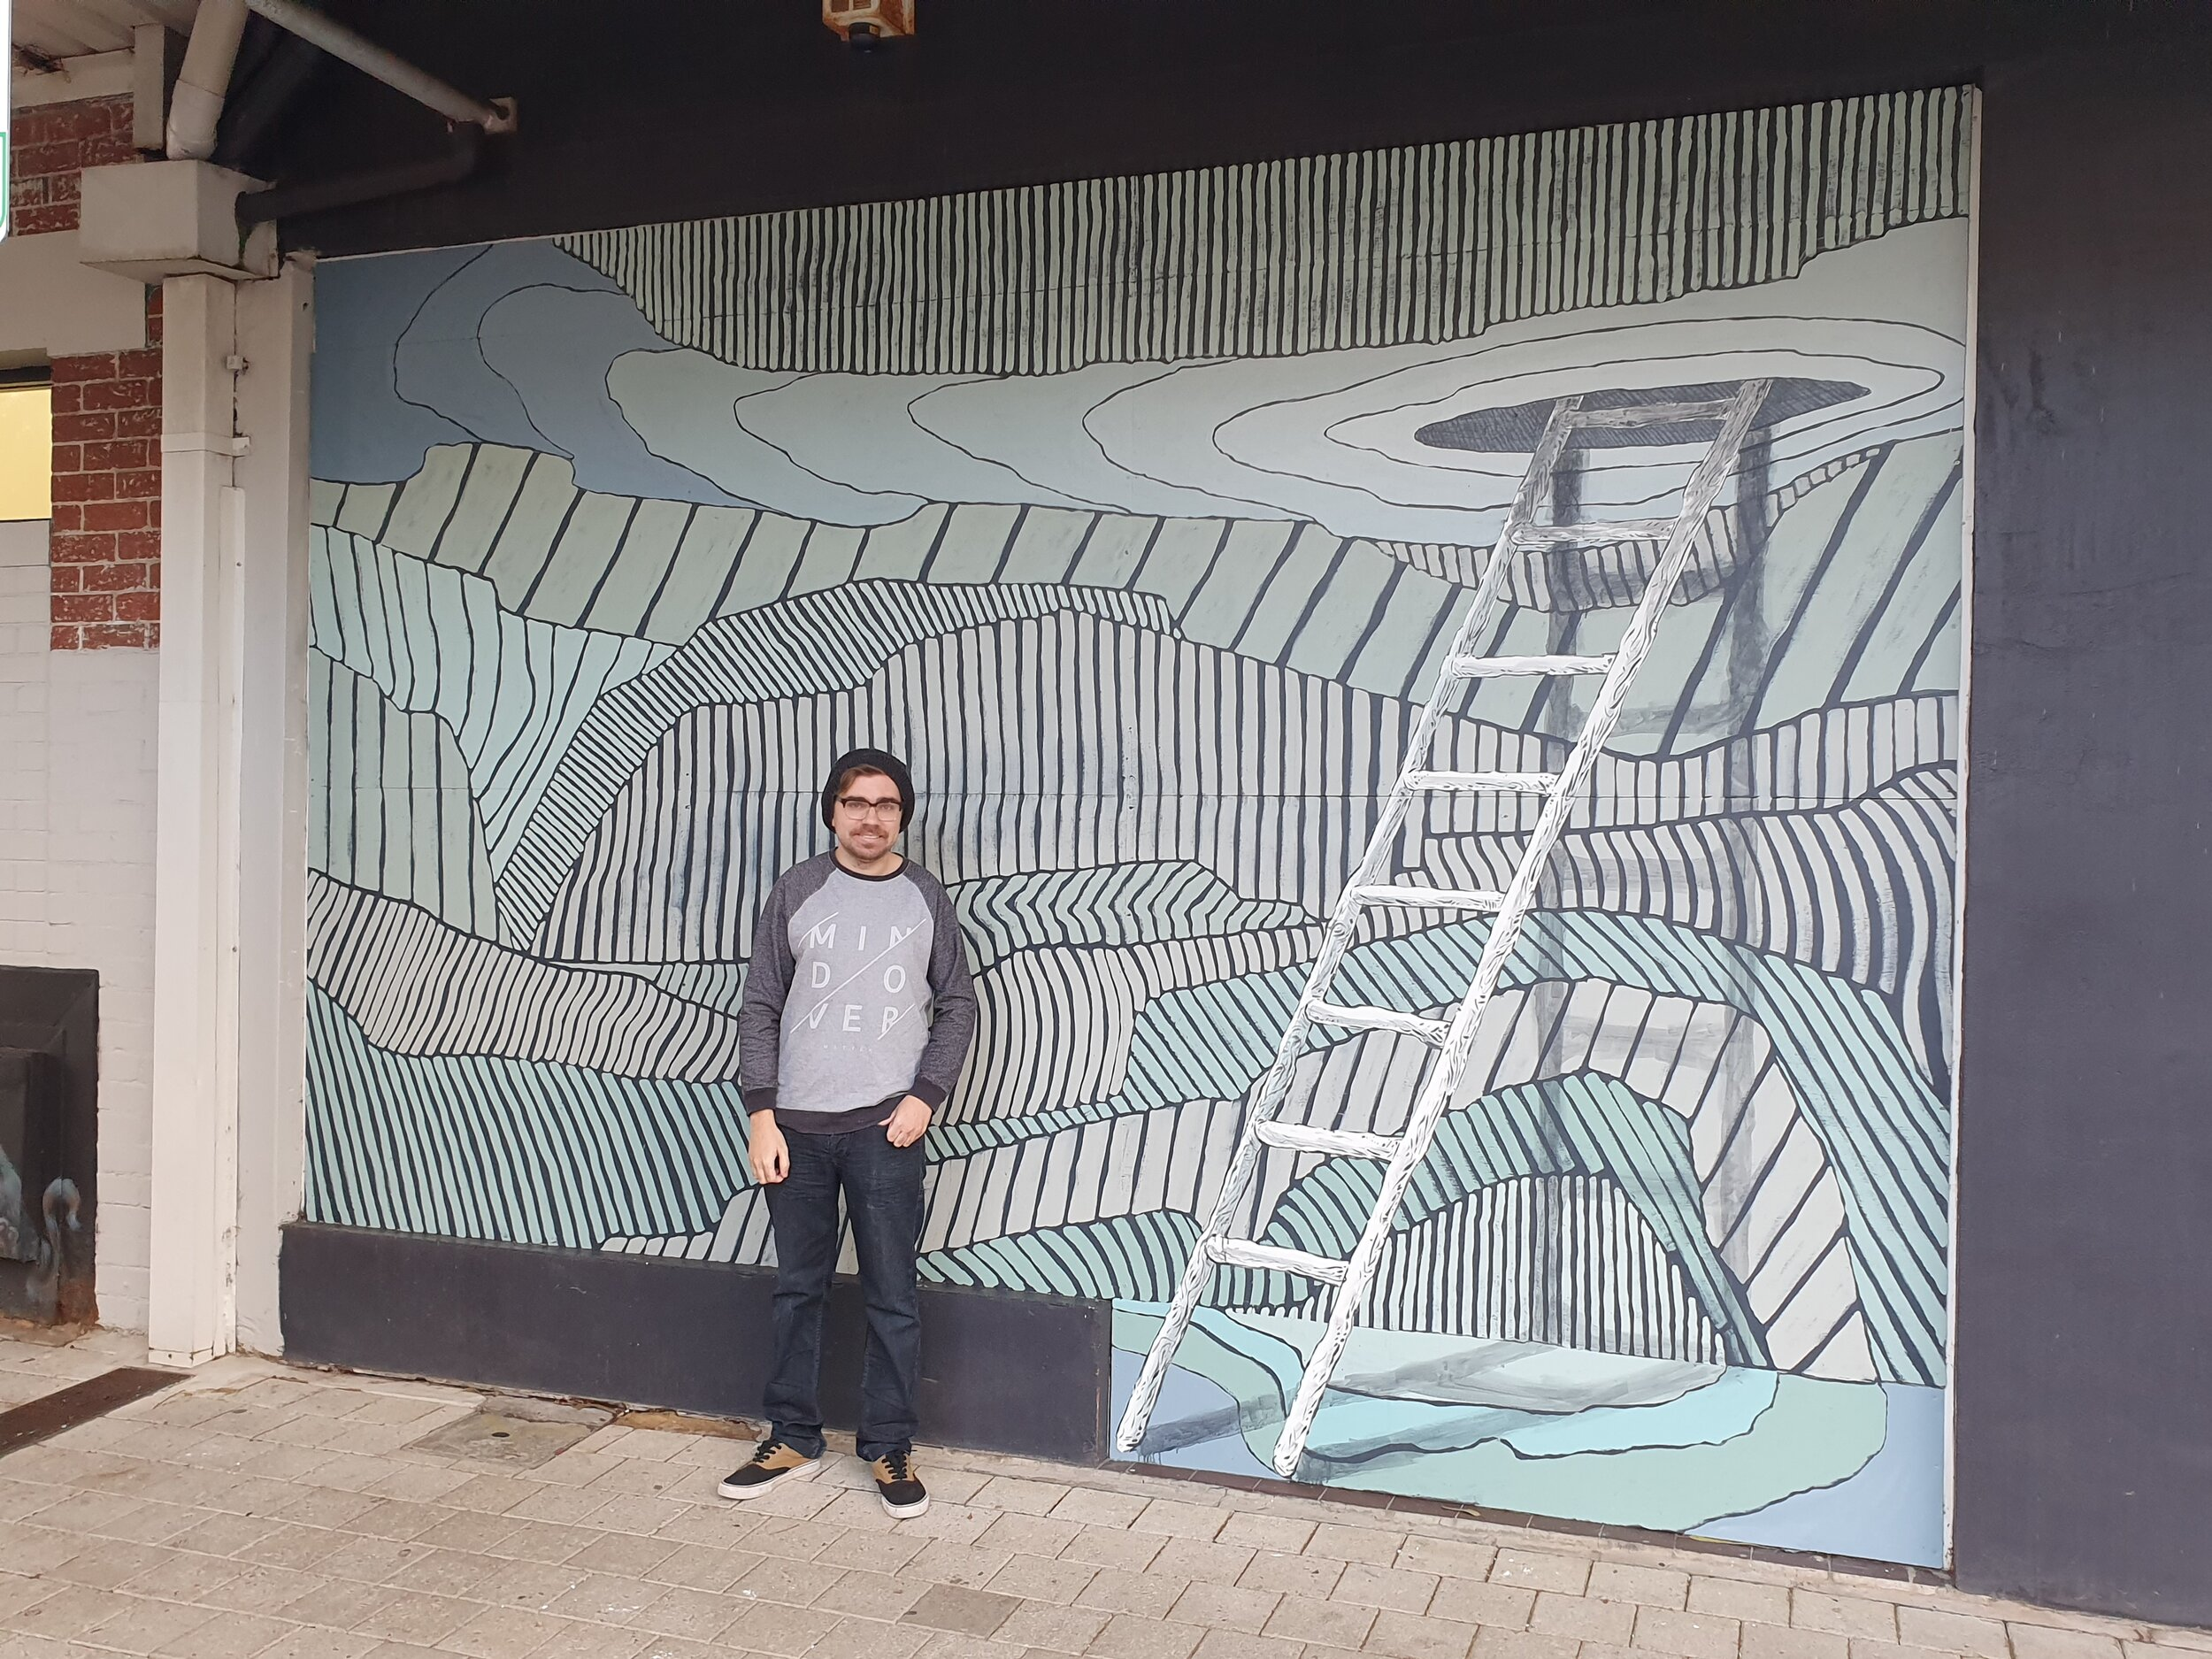 Dylan Nietzreba worked with guidance of his mentor, Andrew Frazer, on a mural in Bunbury